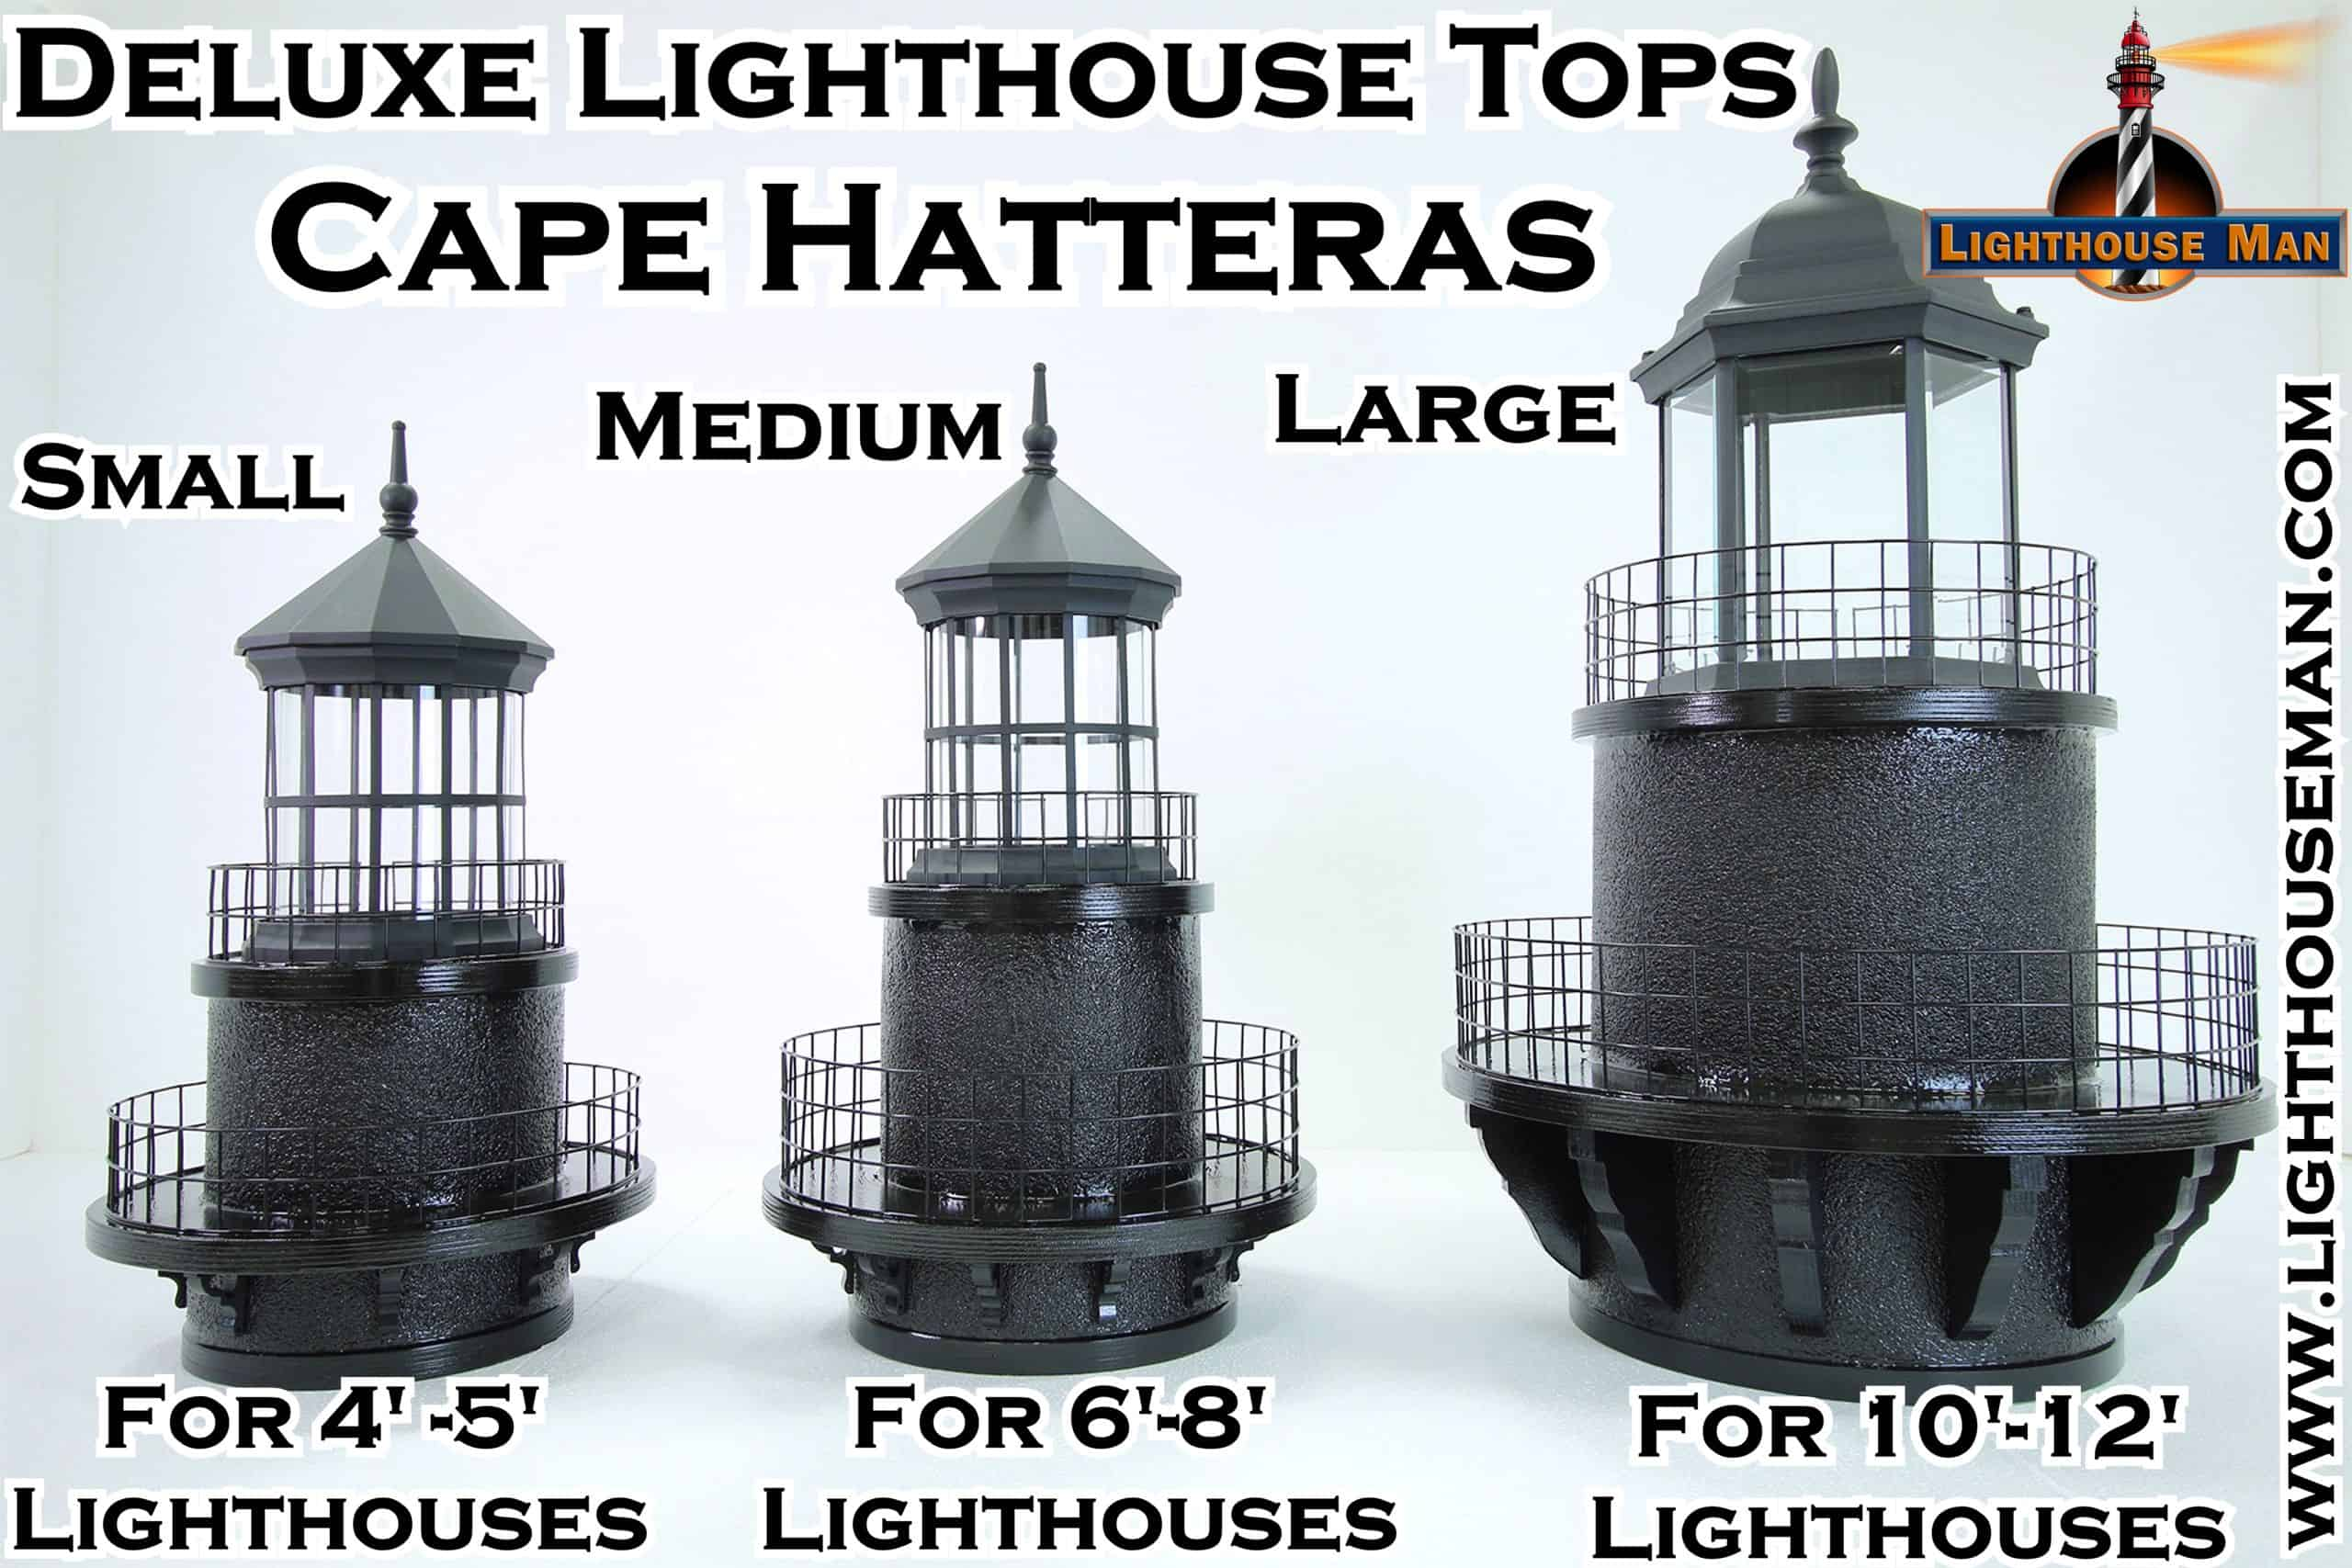 Cape Hatteras Deluxe Lighthouse Tops